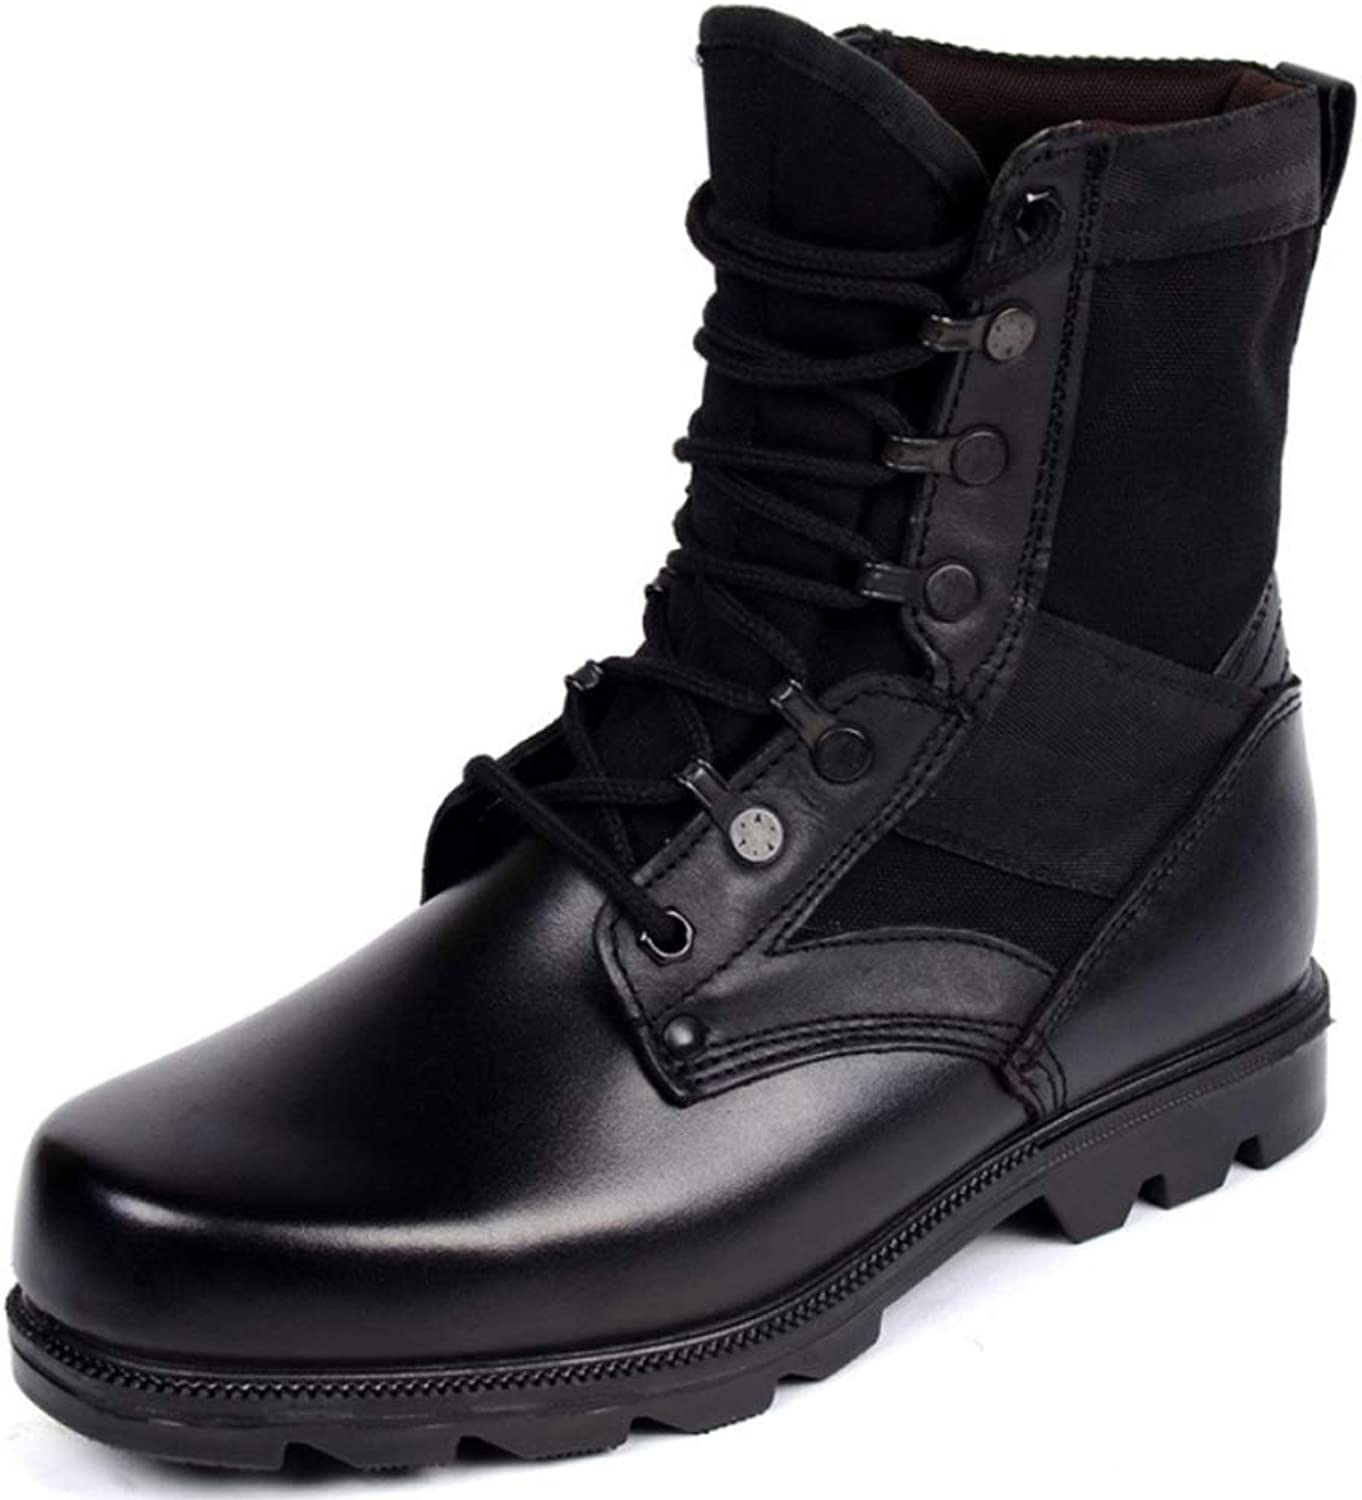 Mens Special Forces Military Police Army Combat Boots Outdoor Mountaineering High Top Leather Martin shoes Comfortable Footwear